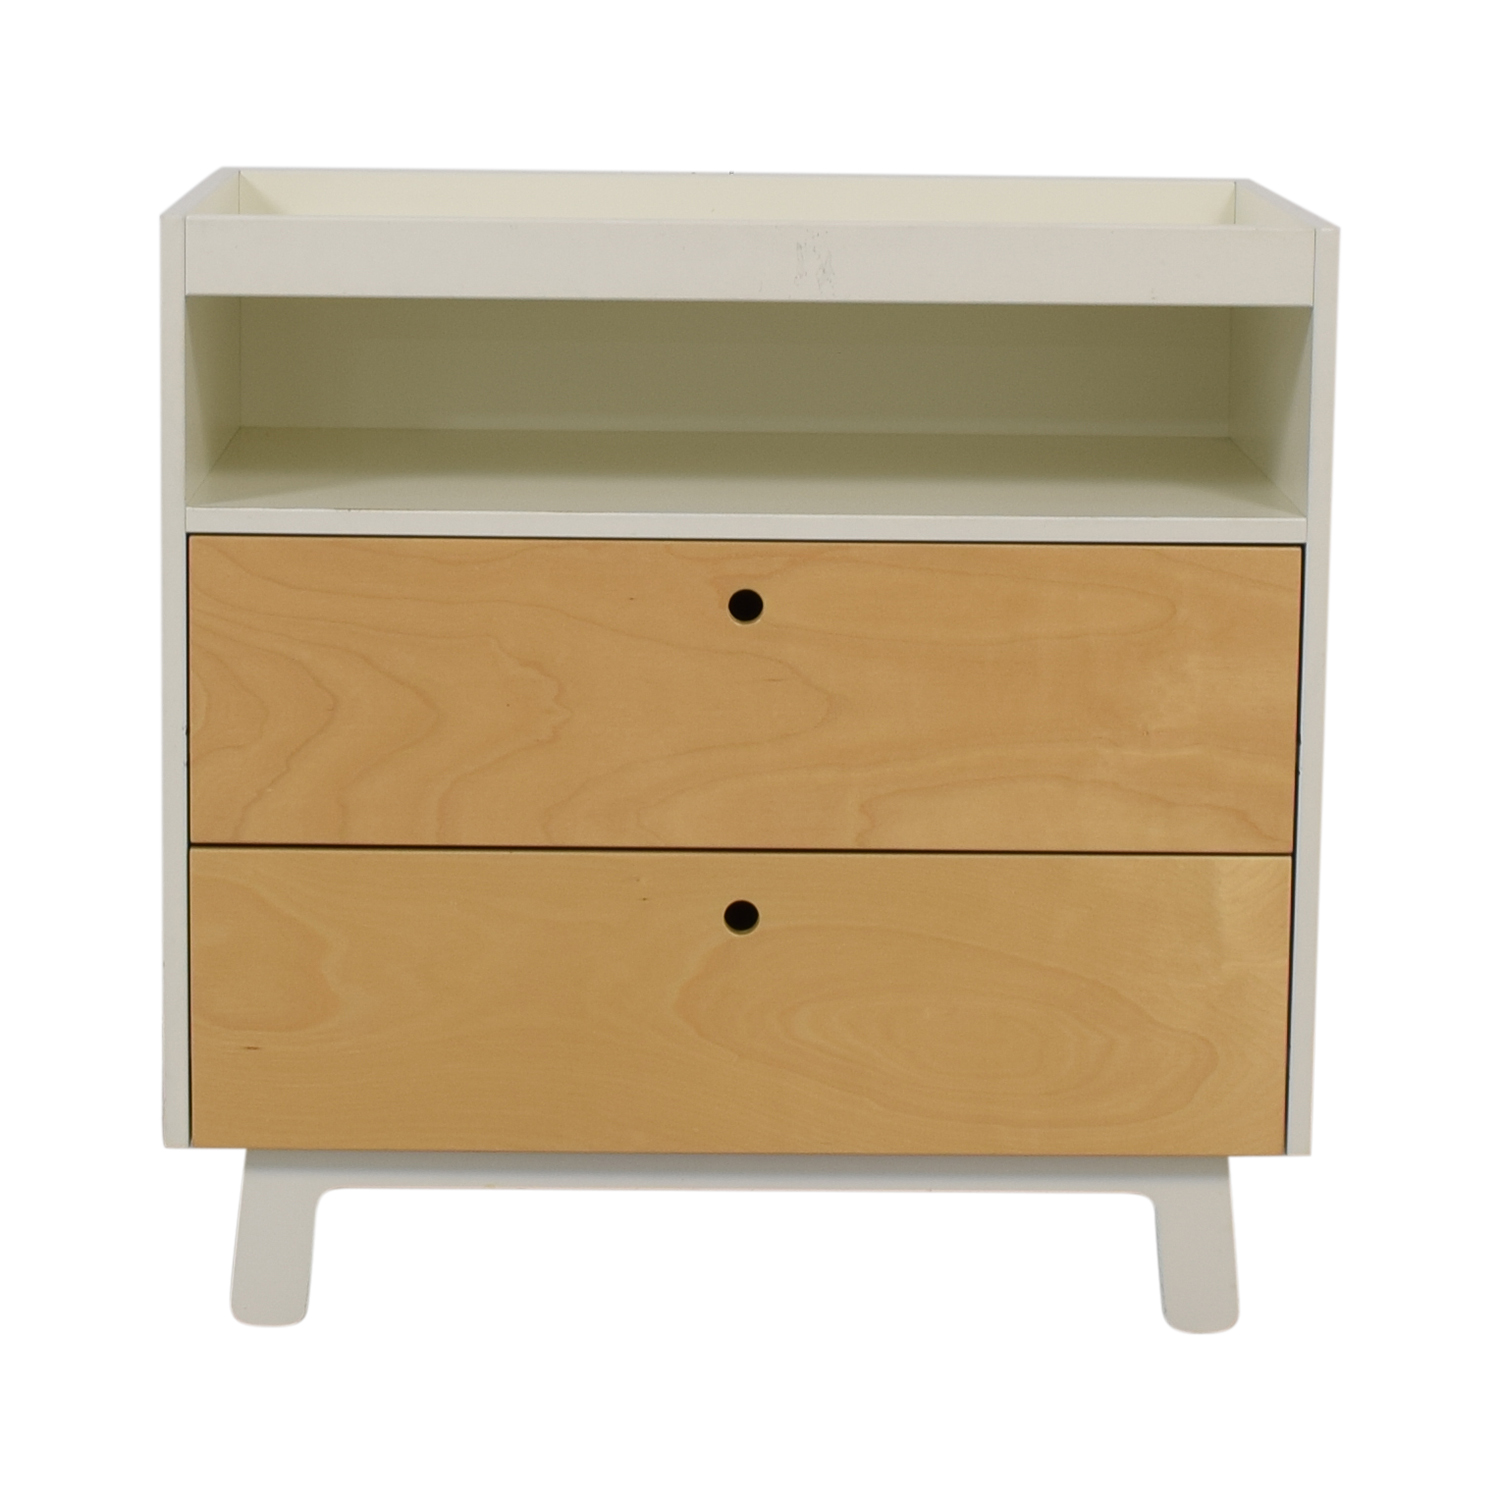 81% OFF   Oeuf Oeuf White And Natural Two Drawer Dresser With Changing  Table Top / Storage